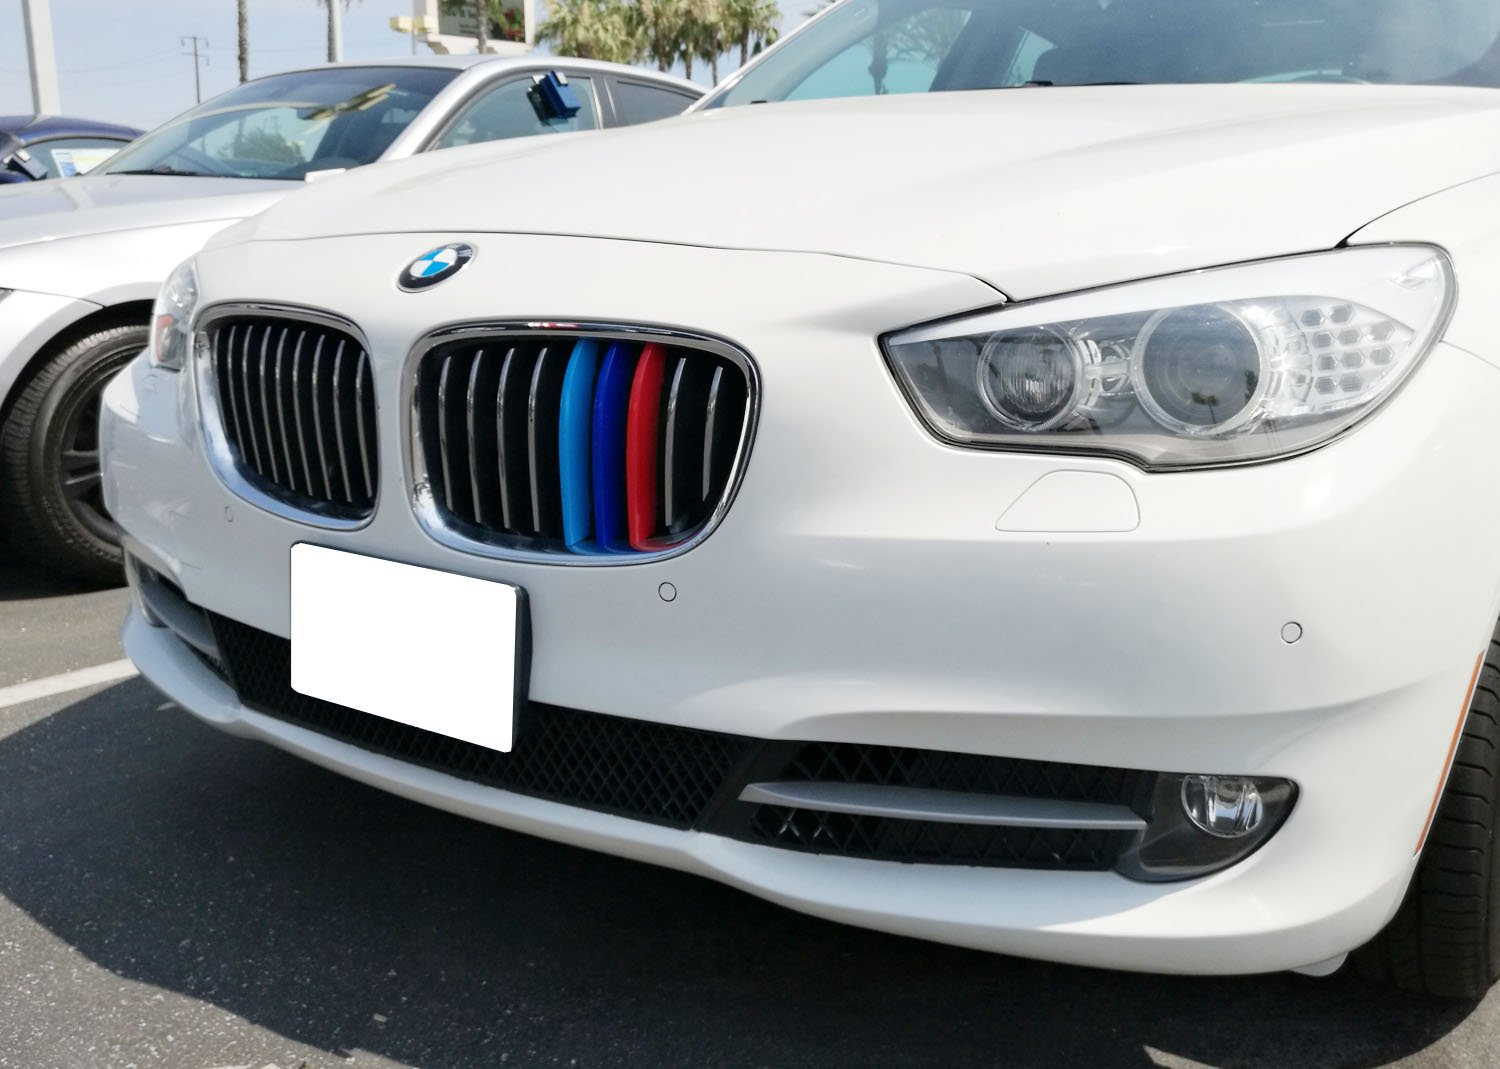 iJDMTOY Exact Fit //////M-Colored Grille Insert Trims For BMW F10 F11 5 Series 528i 535i 550i with Standard Center Chrome Kidney Grill 10 Beams Not For 12-Beam Black Grille